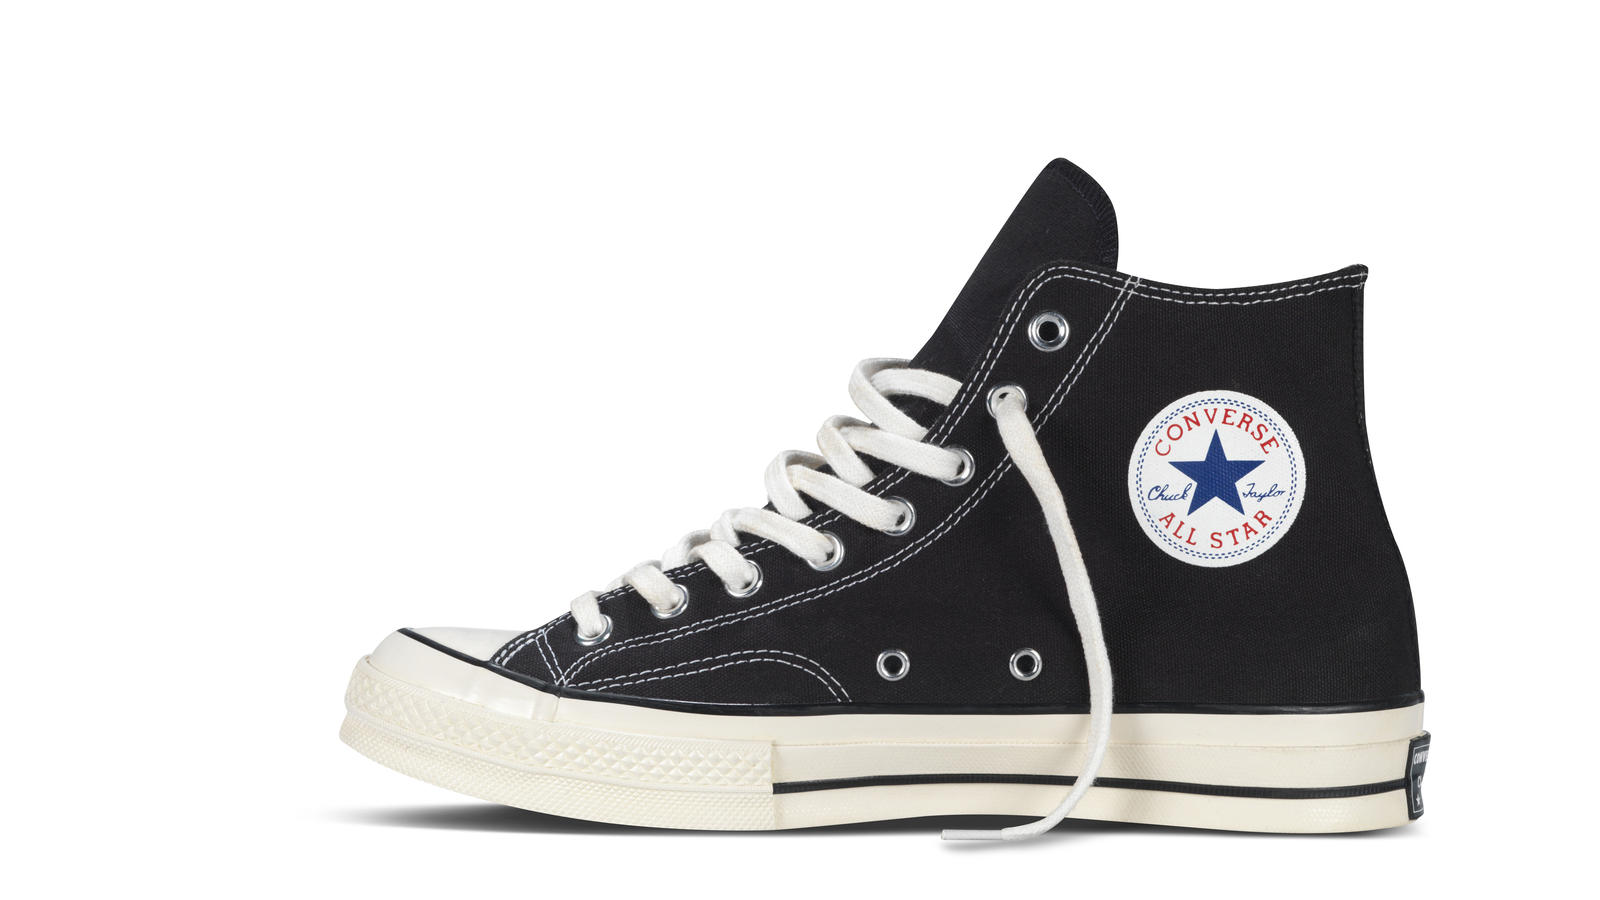 e2b644ccf5f1 Converse Launches Its Spring Summer 2013 Jack Purcell   Premium ...